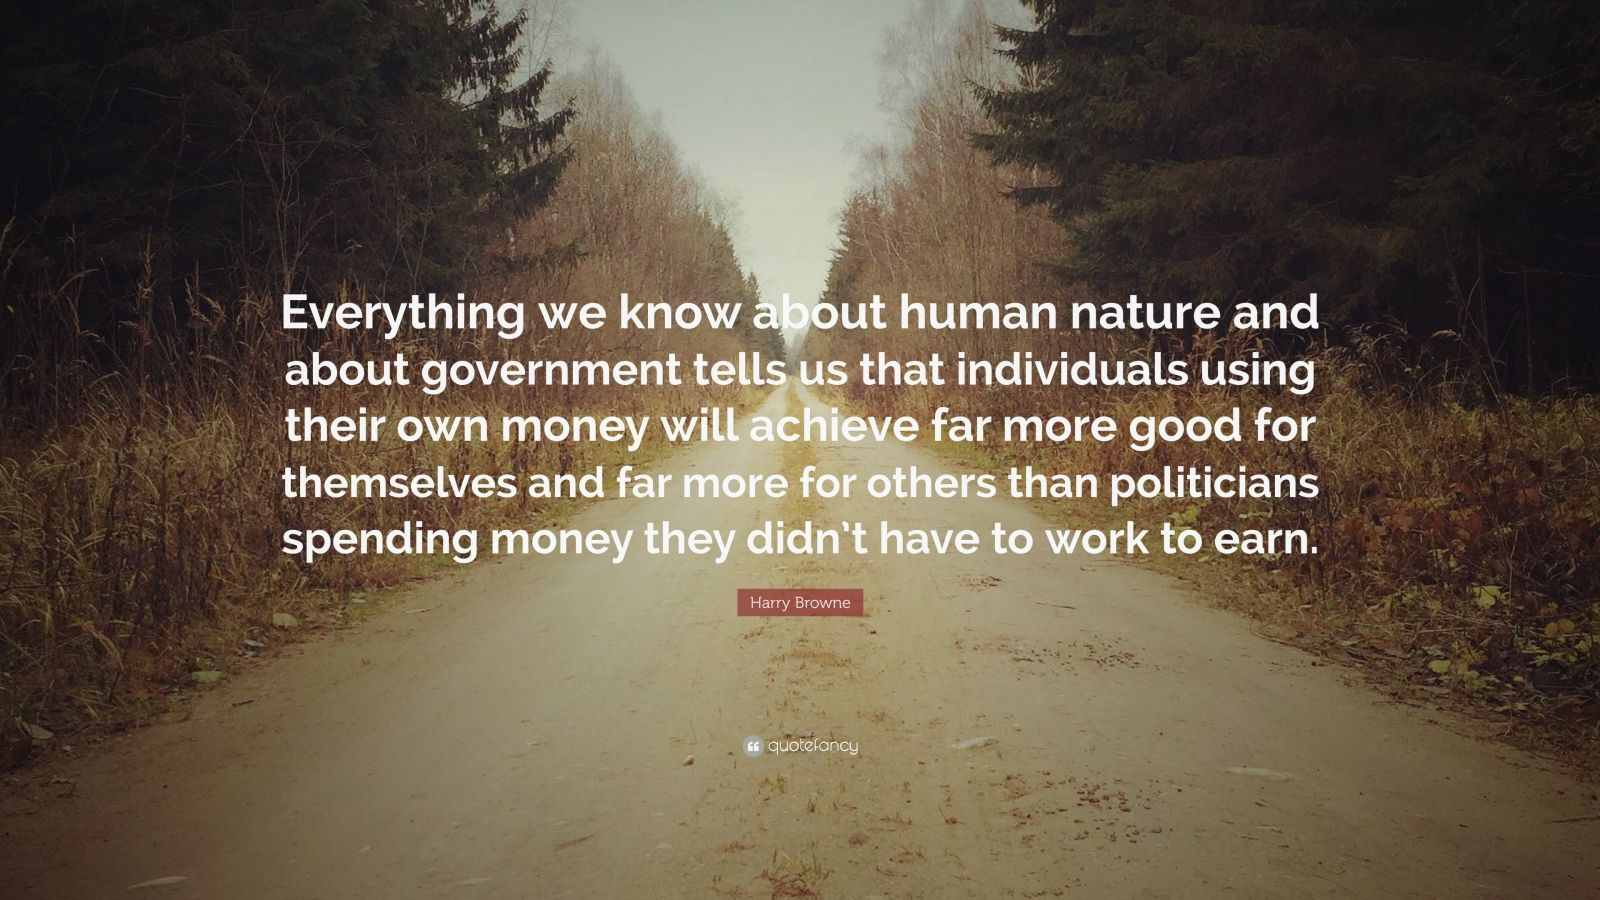 """Harry Browne Quote: """"Everything we know about human nature and about government tells us that individuals using their own money will achieve far more good for themselves and far more for others than politicians spending money they didn't have to work to earn."""""""